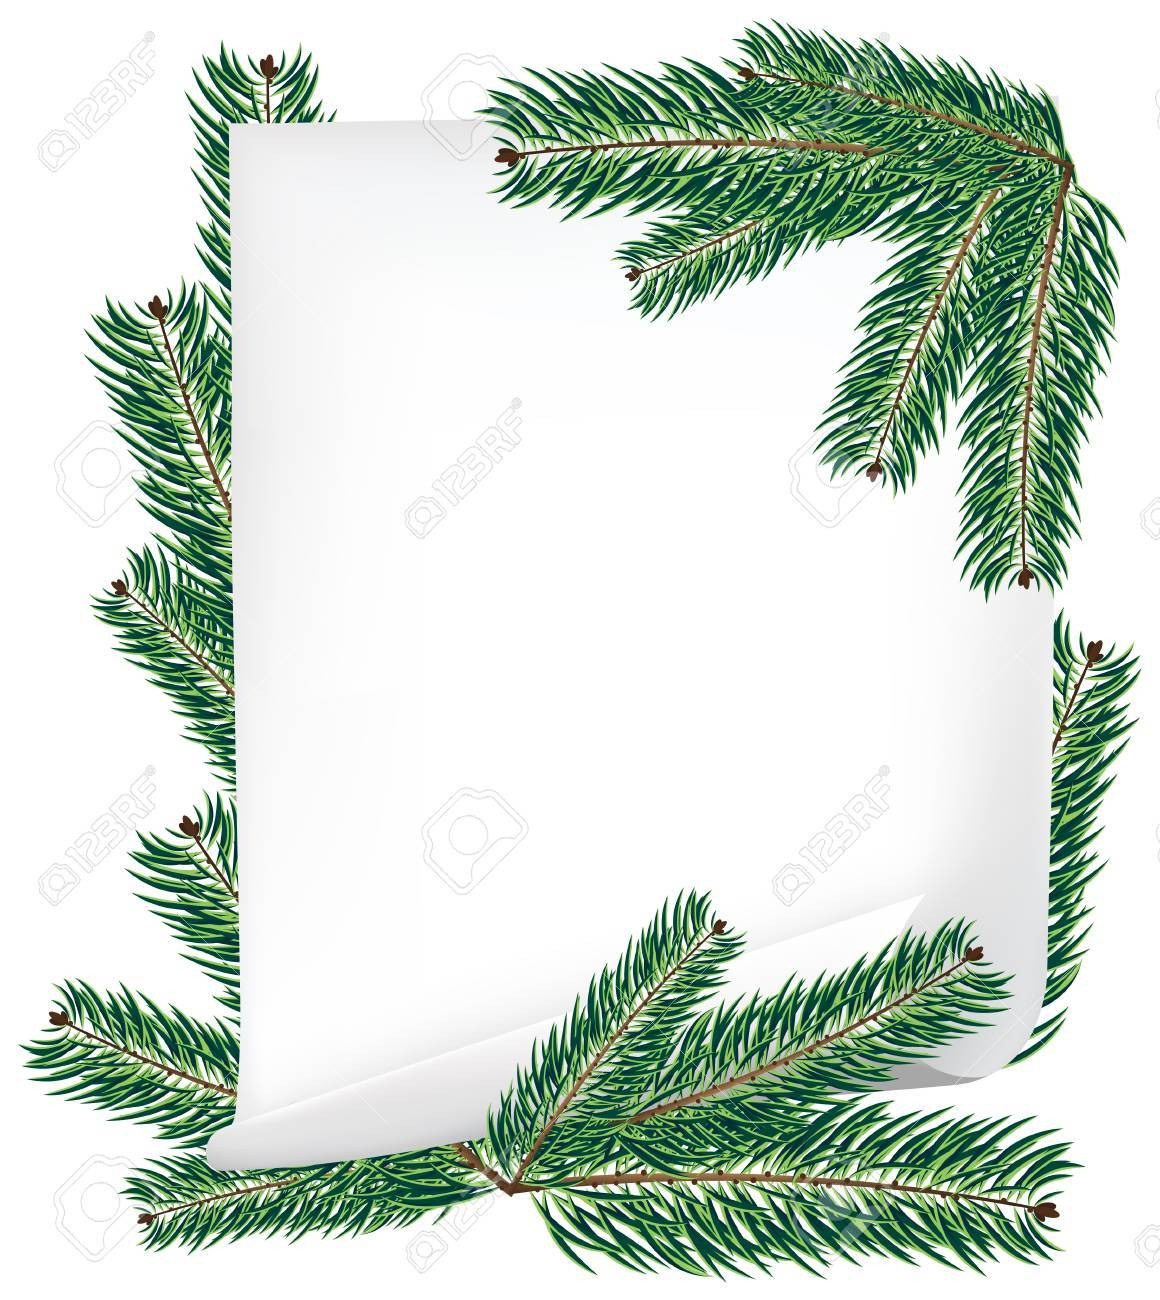 Sheet of paper and spruce branches isolated on white - 11528038